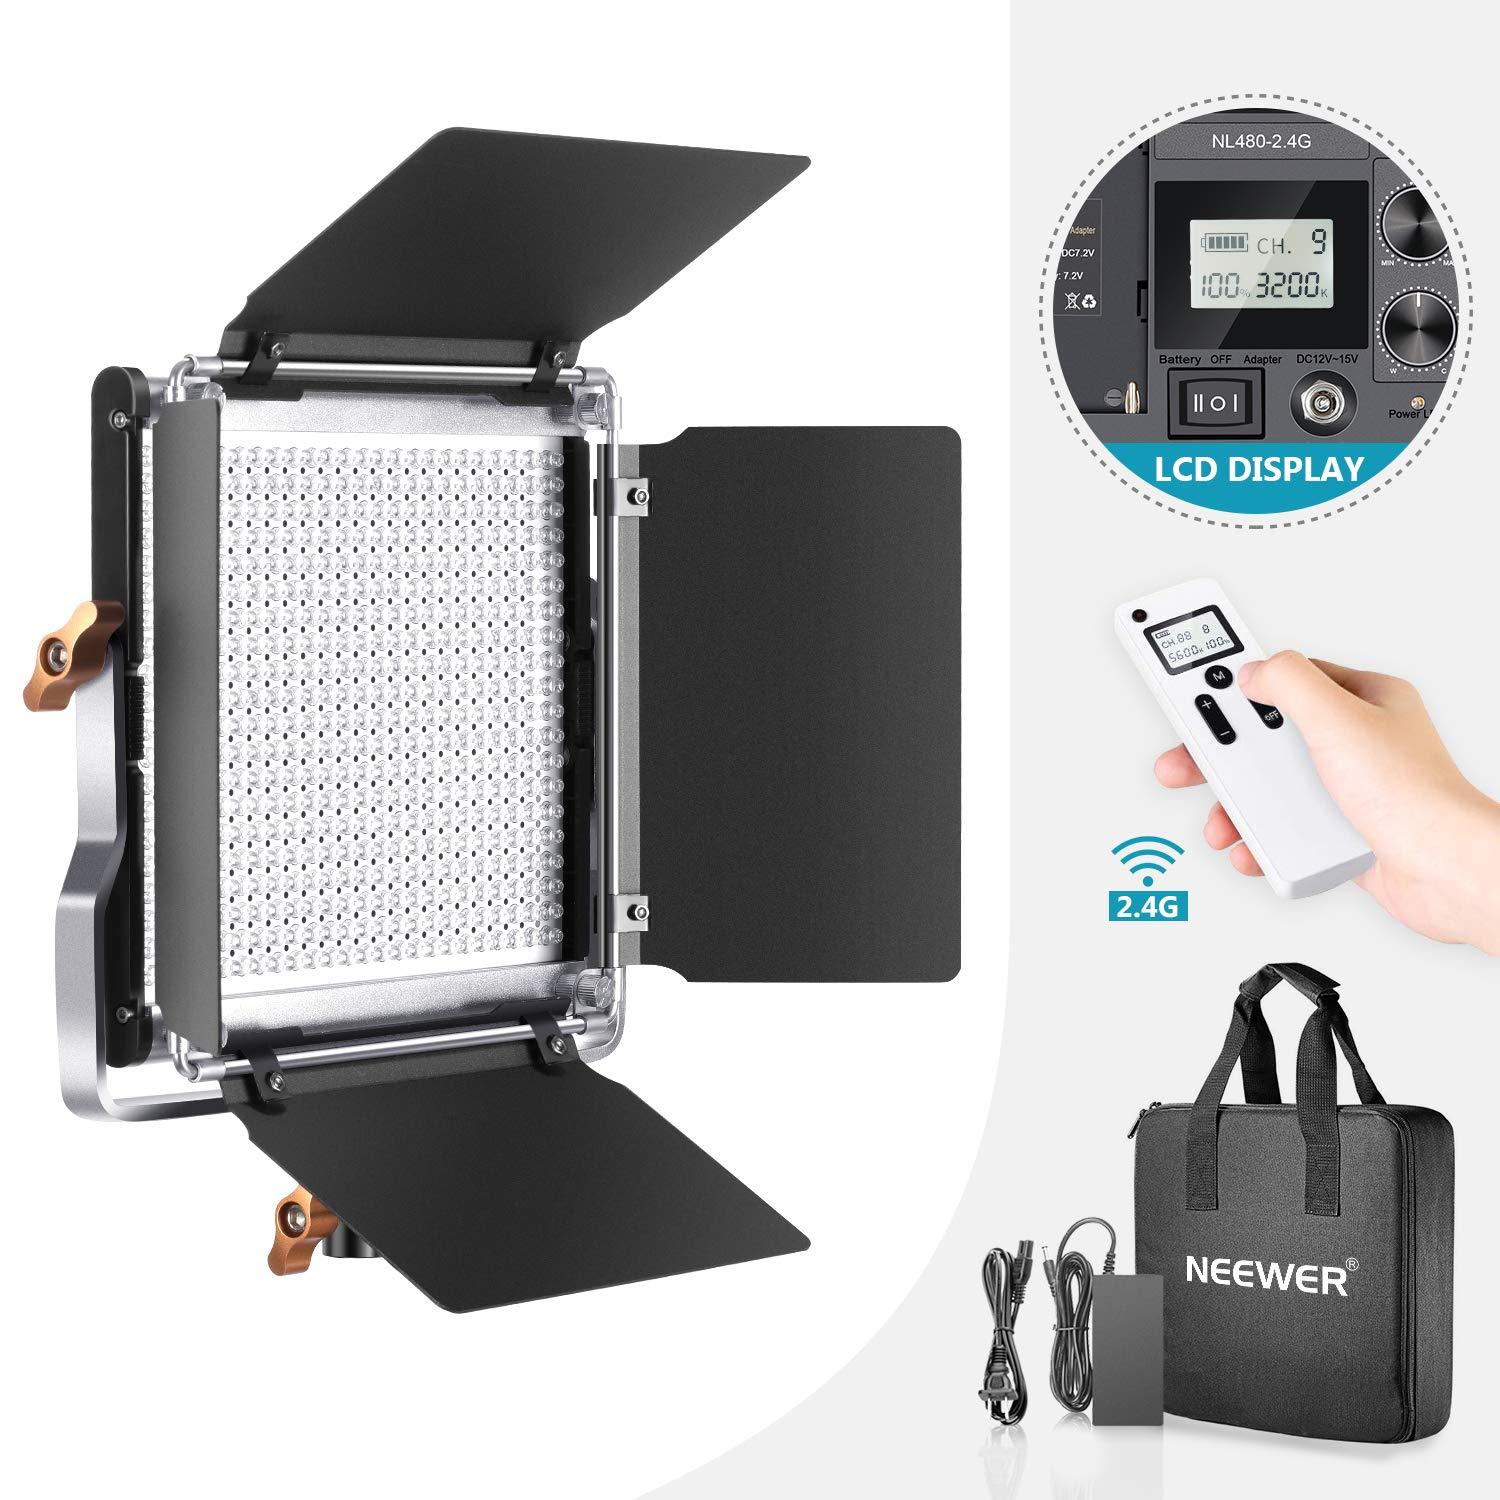 Neewer Advanced 2.4G 480 LED Video Light, Dimmable Bi-Color LED Panel with LCD Screen and 2.4G Wireless Remote for Portrait Product Photography, Studio Video Shooting with Metal U Bracket and Barndoor by Neewer